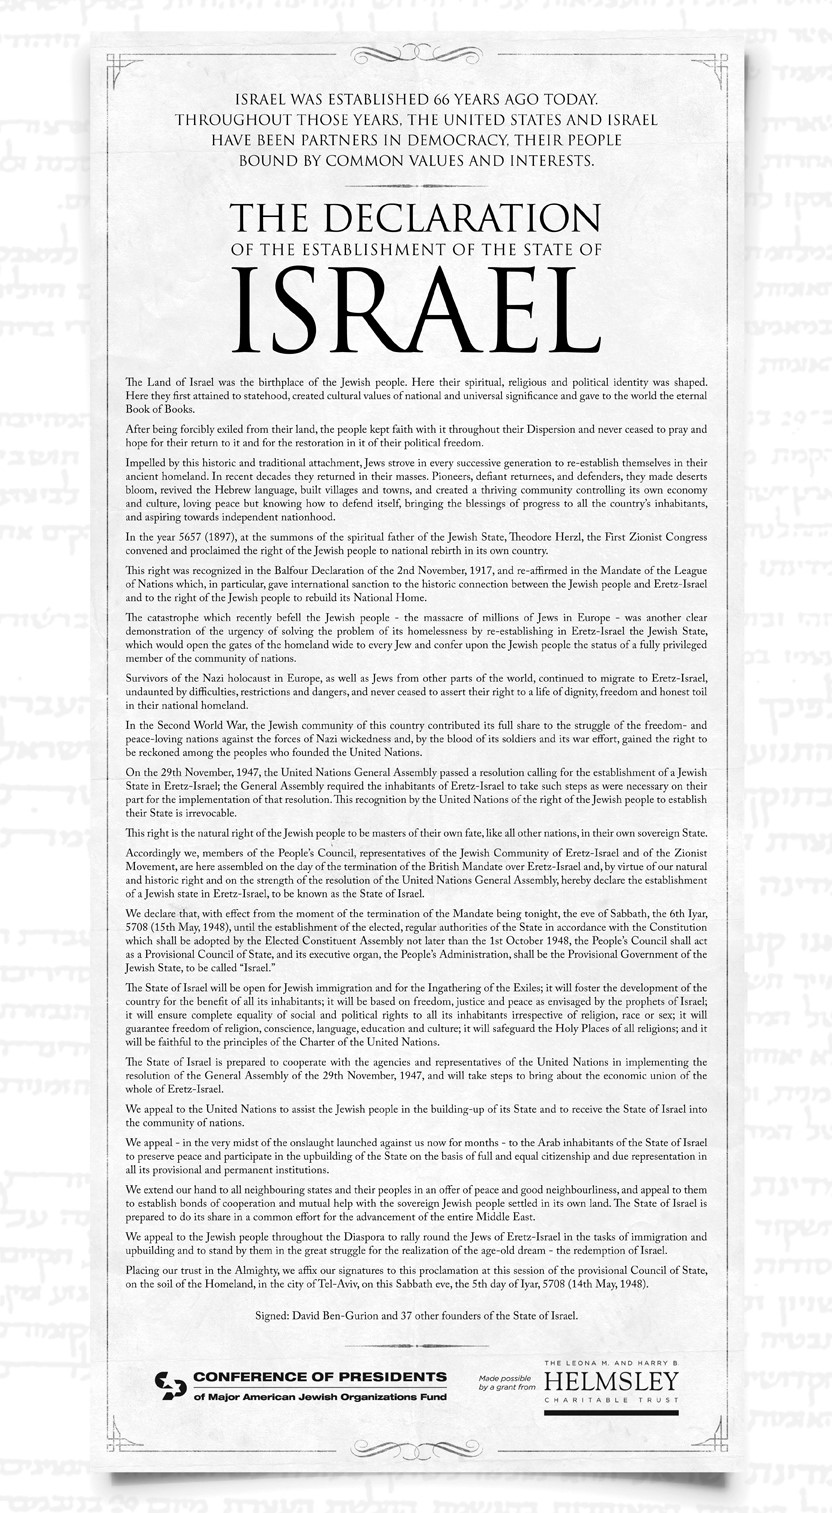 Israel's Declaration of Independence